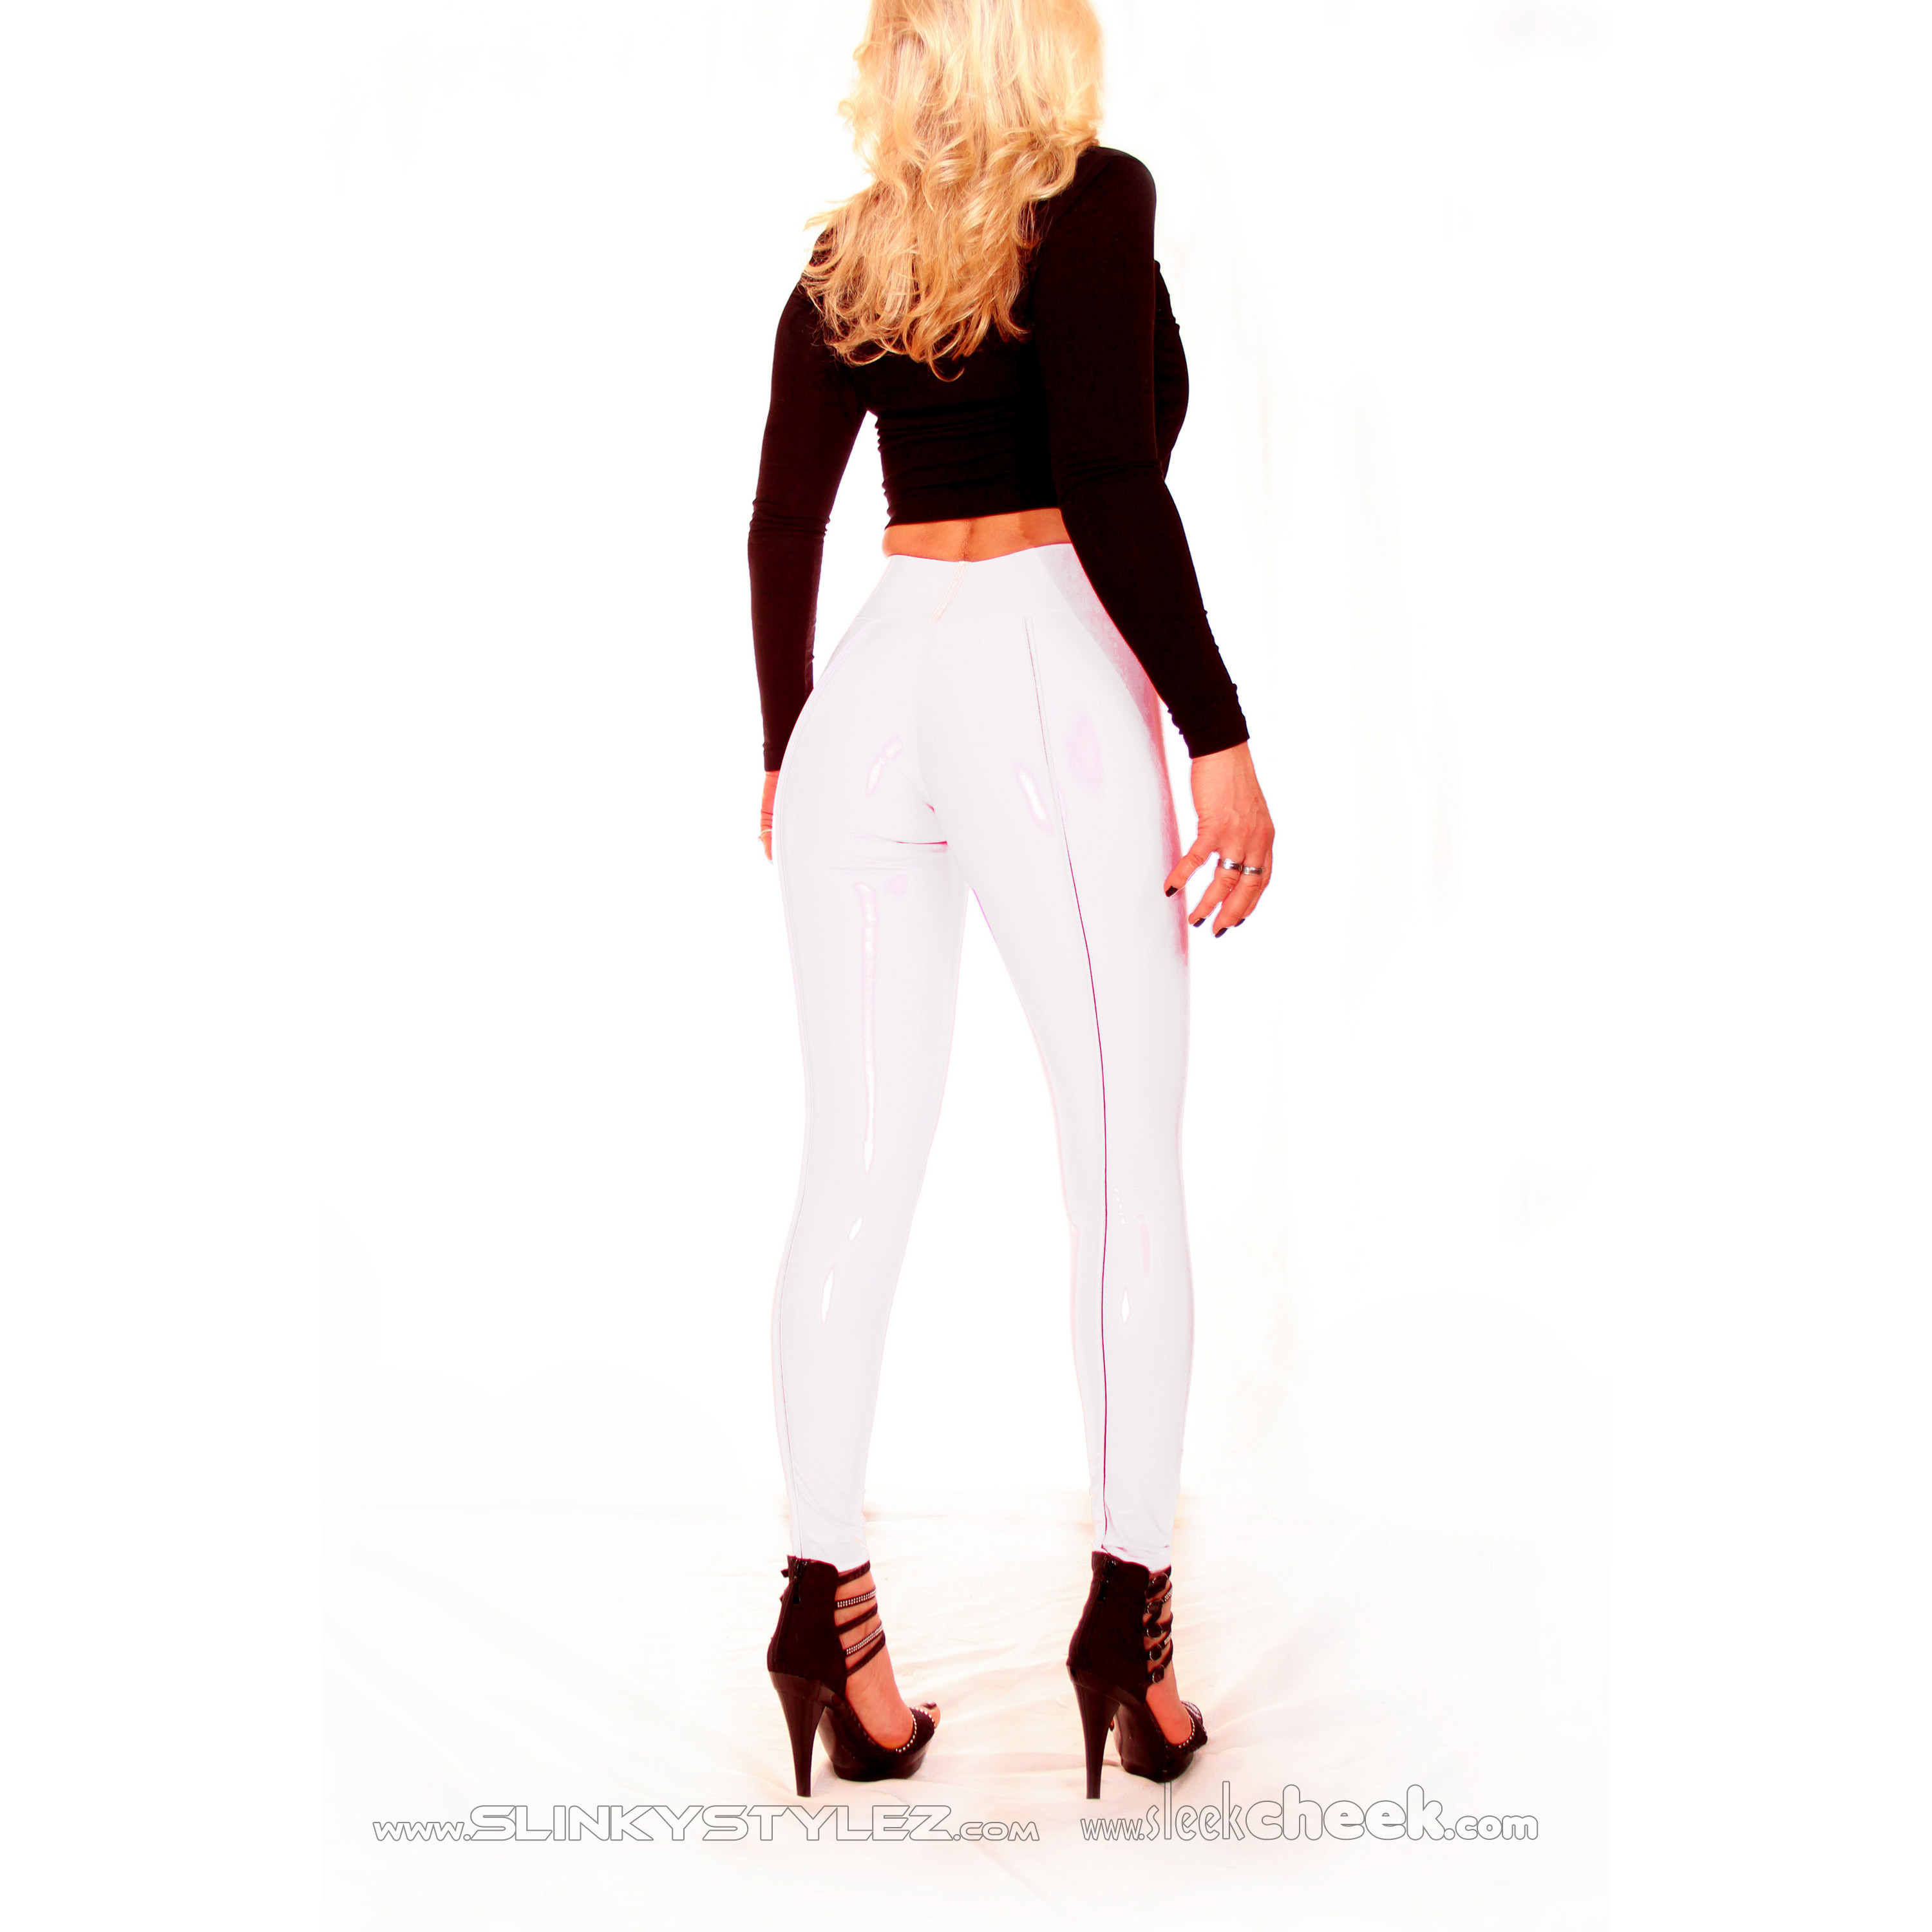 SLEEKCHEEK Booty Leggings HL5AX - CrystalLac Z360 WHITE - STANDARD (L56D)